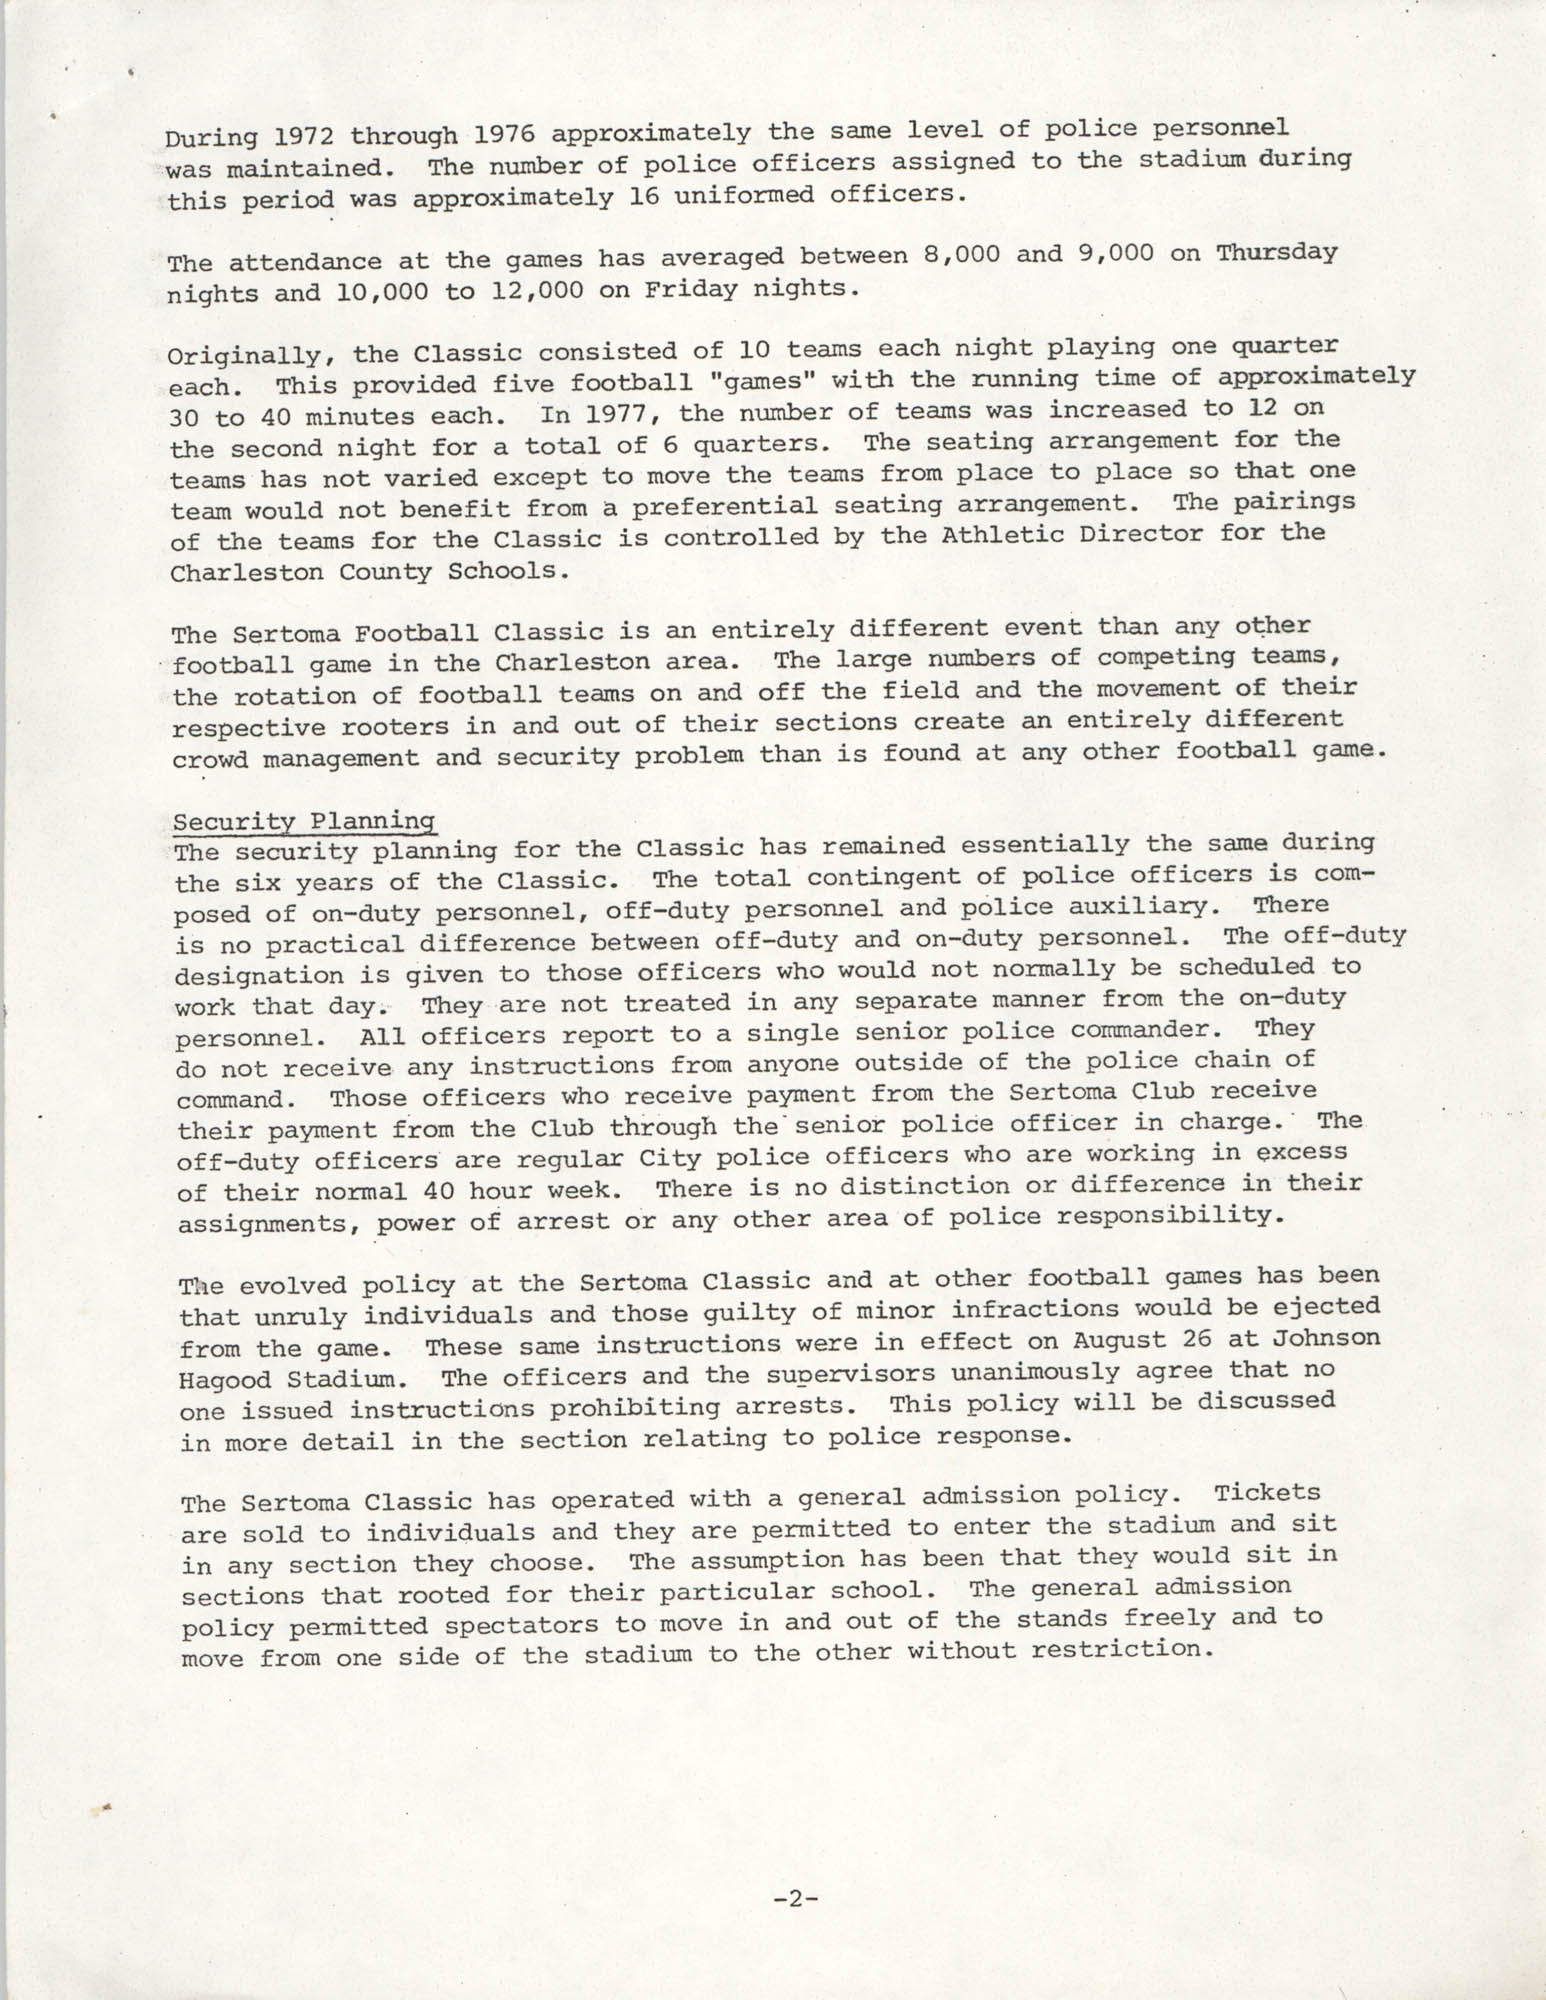 City of Charleston South Carolina Police Department Memorandum, September 6, 1977, Page 2